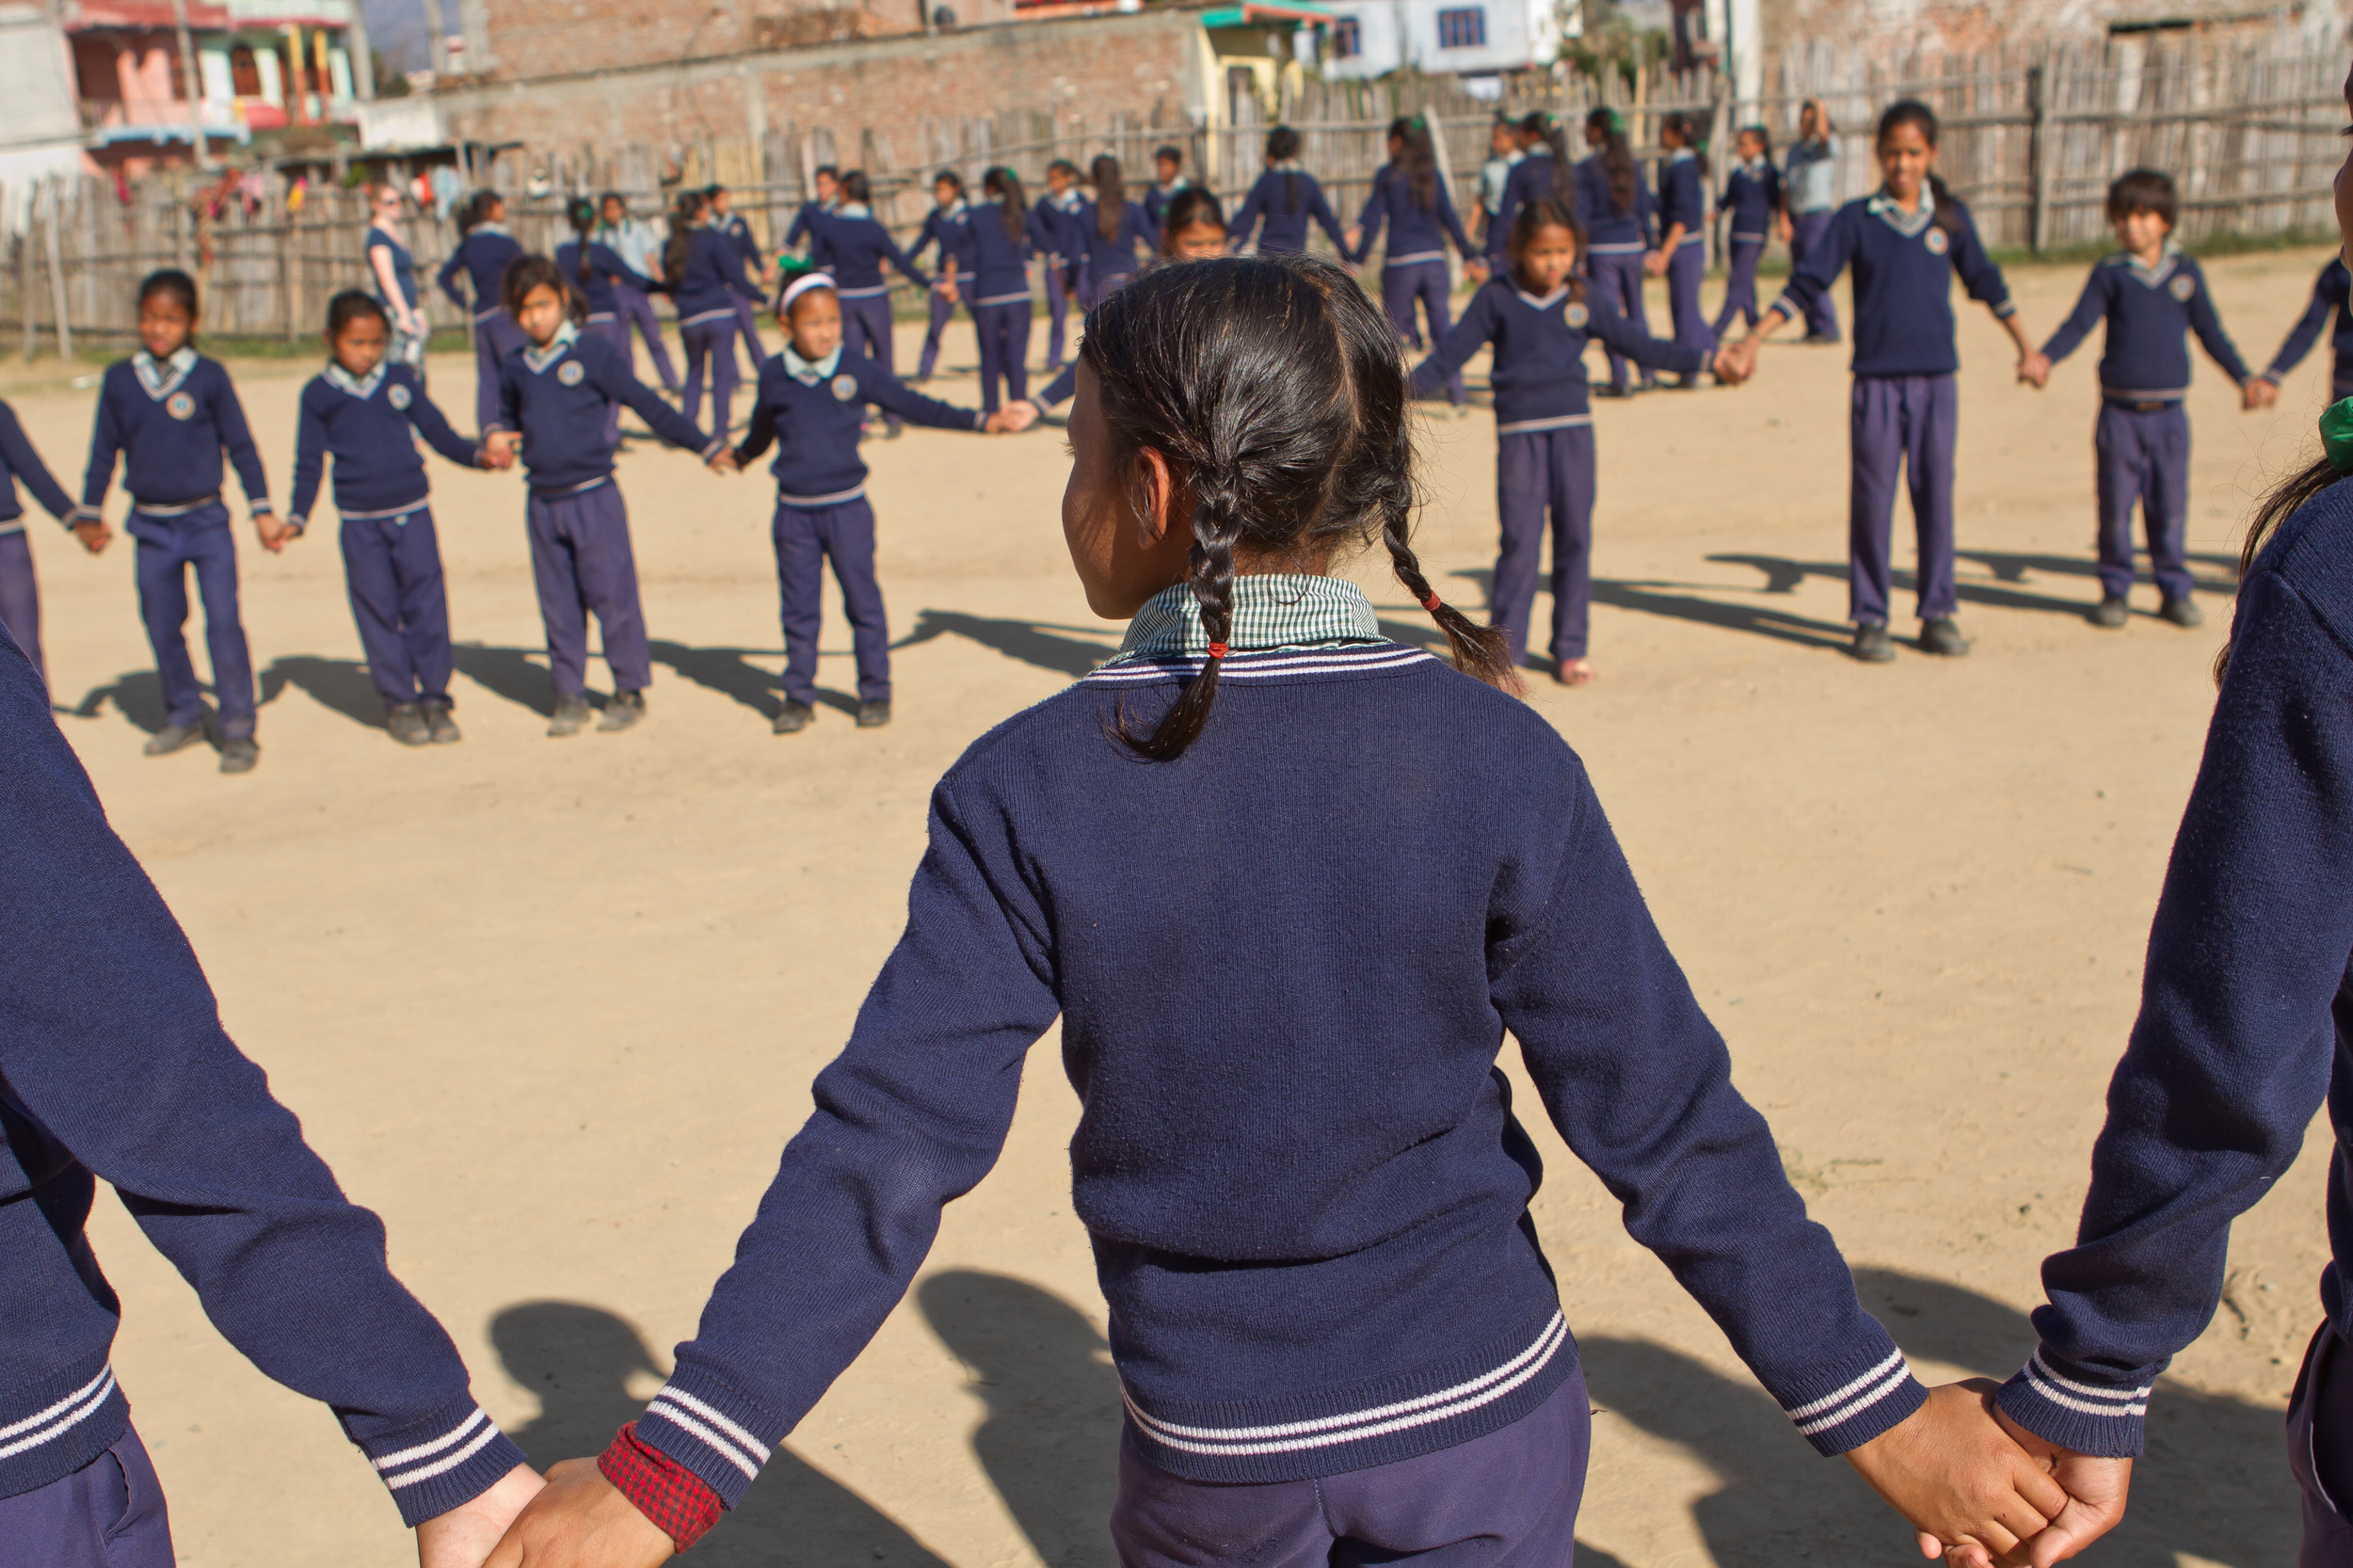 She's the First Scholar Asmita S. holds hands during a game of Red Rover in Nepal, March 2015. (photo by Kate Lord)